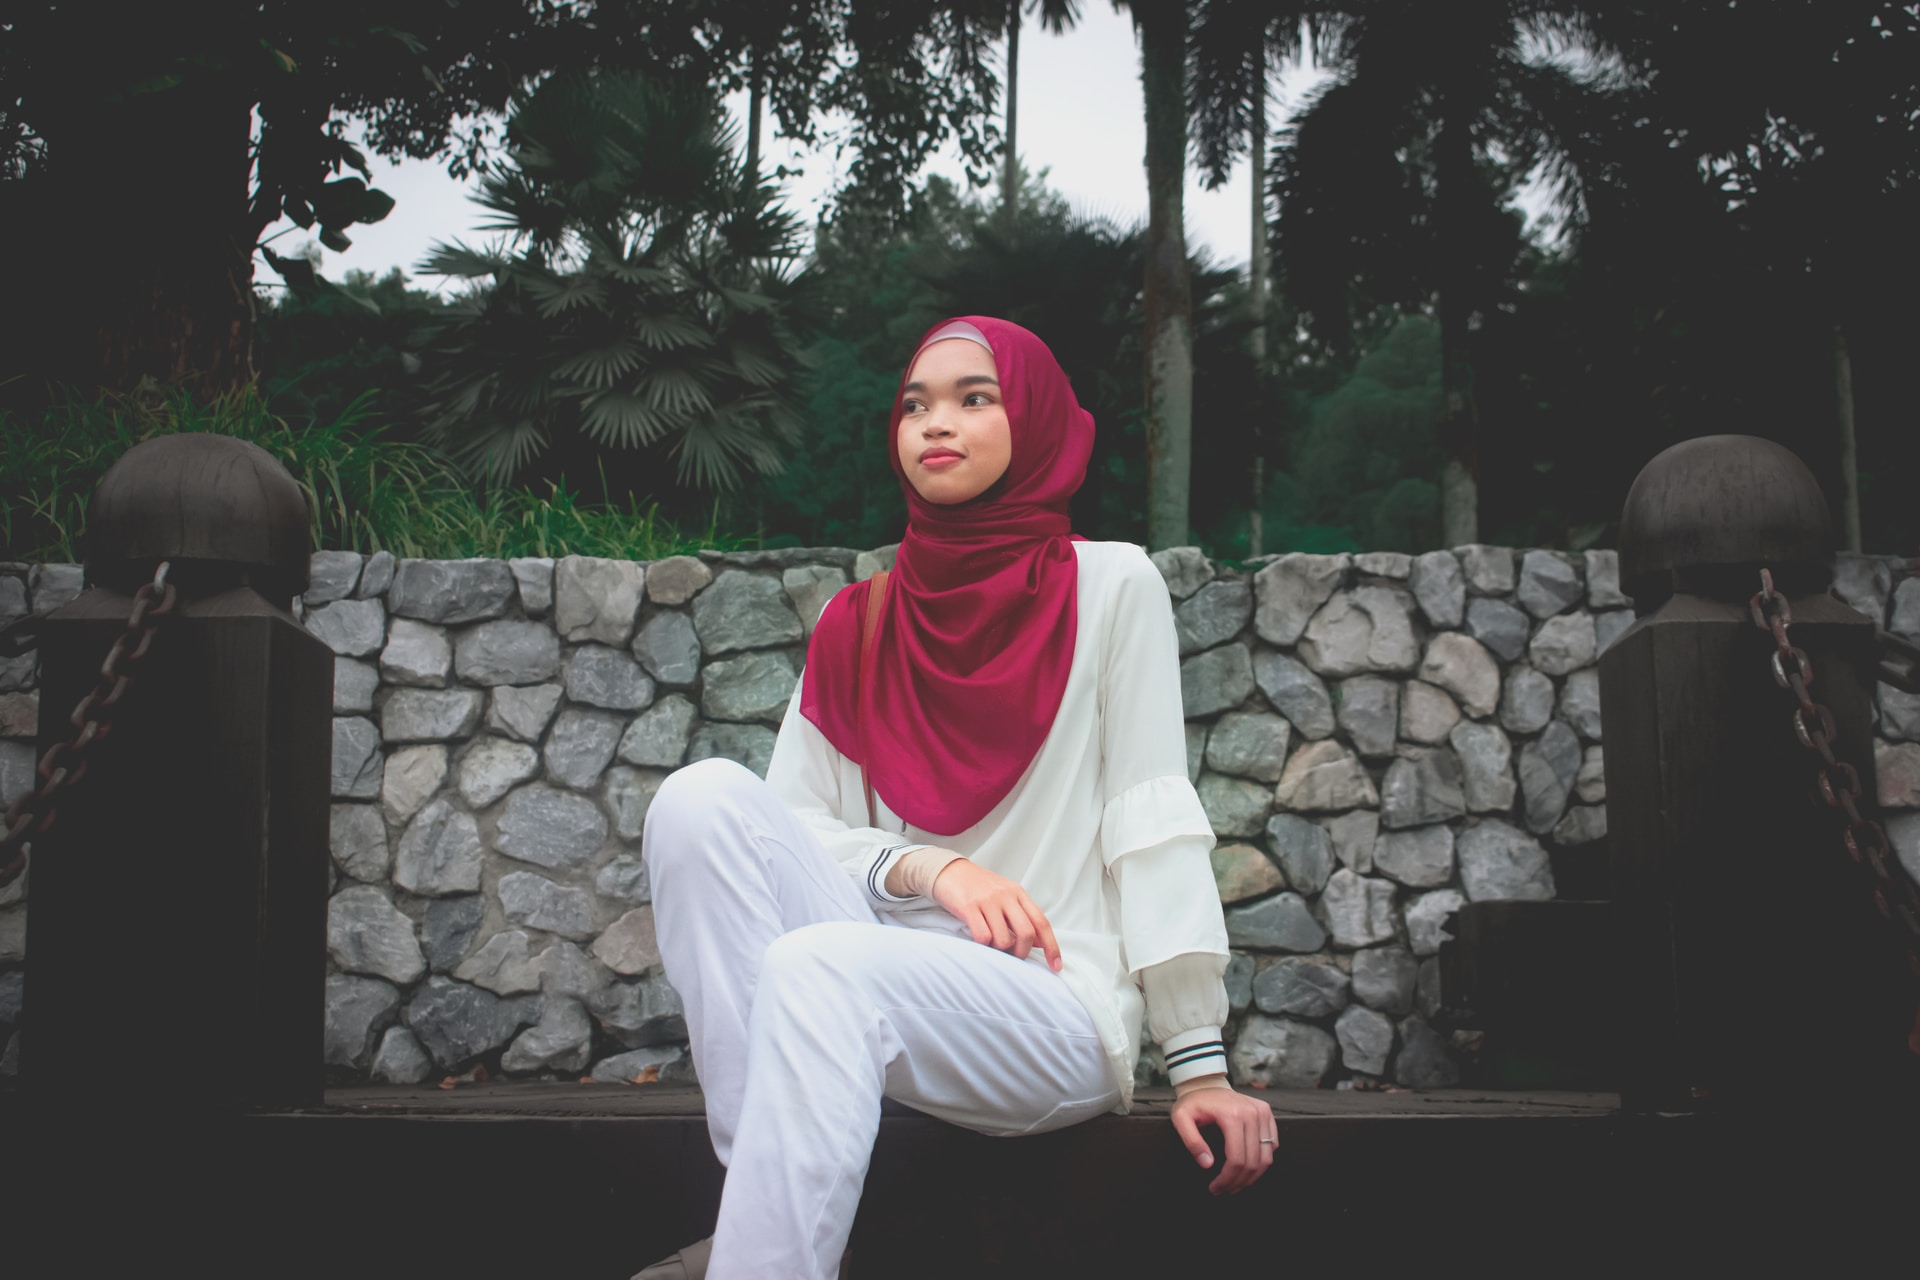 woman in white long sleeve shirt and red hijab sitting on brown wooden bench